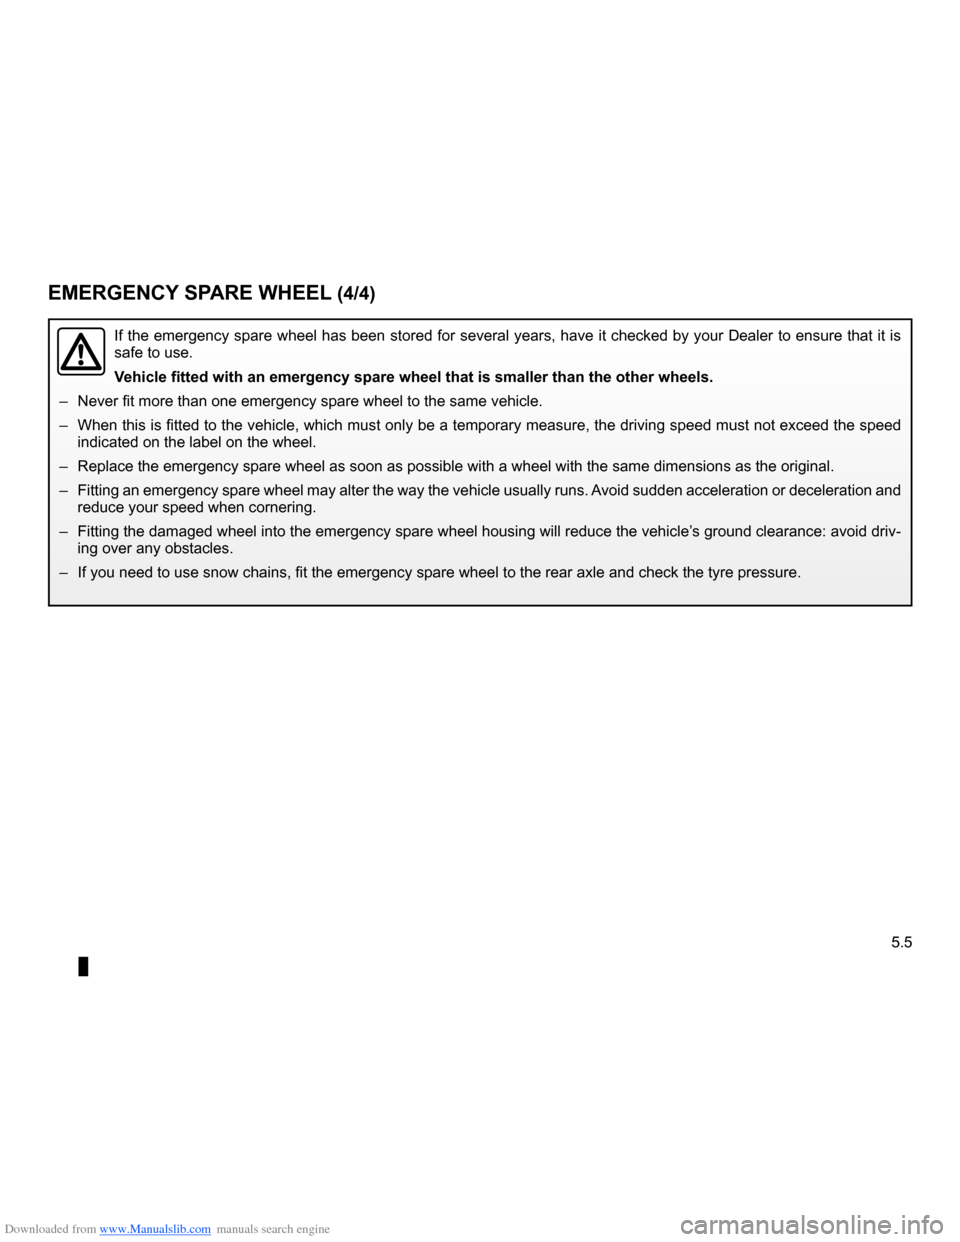 RENAULT CLIO 2009 X85 / 3.G Owners Manual, Page 193